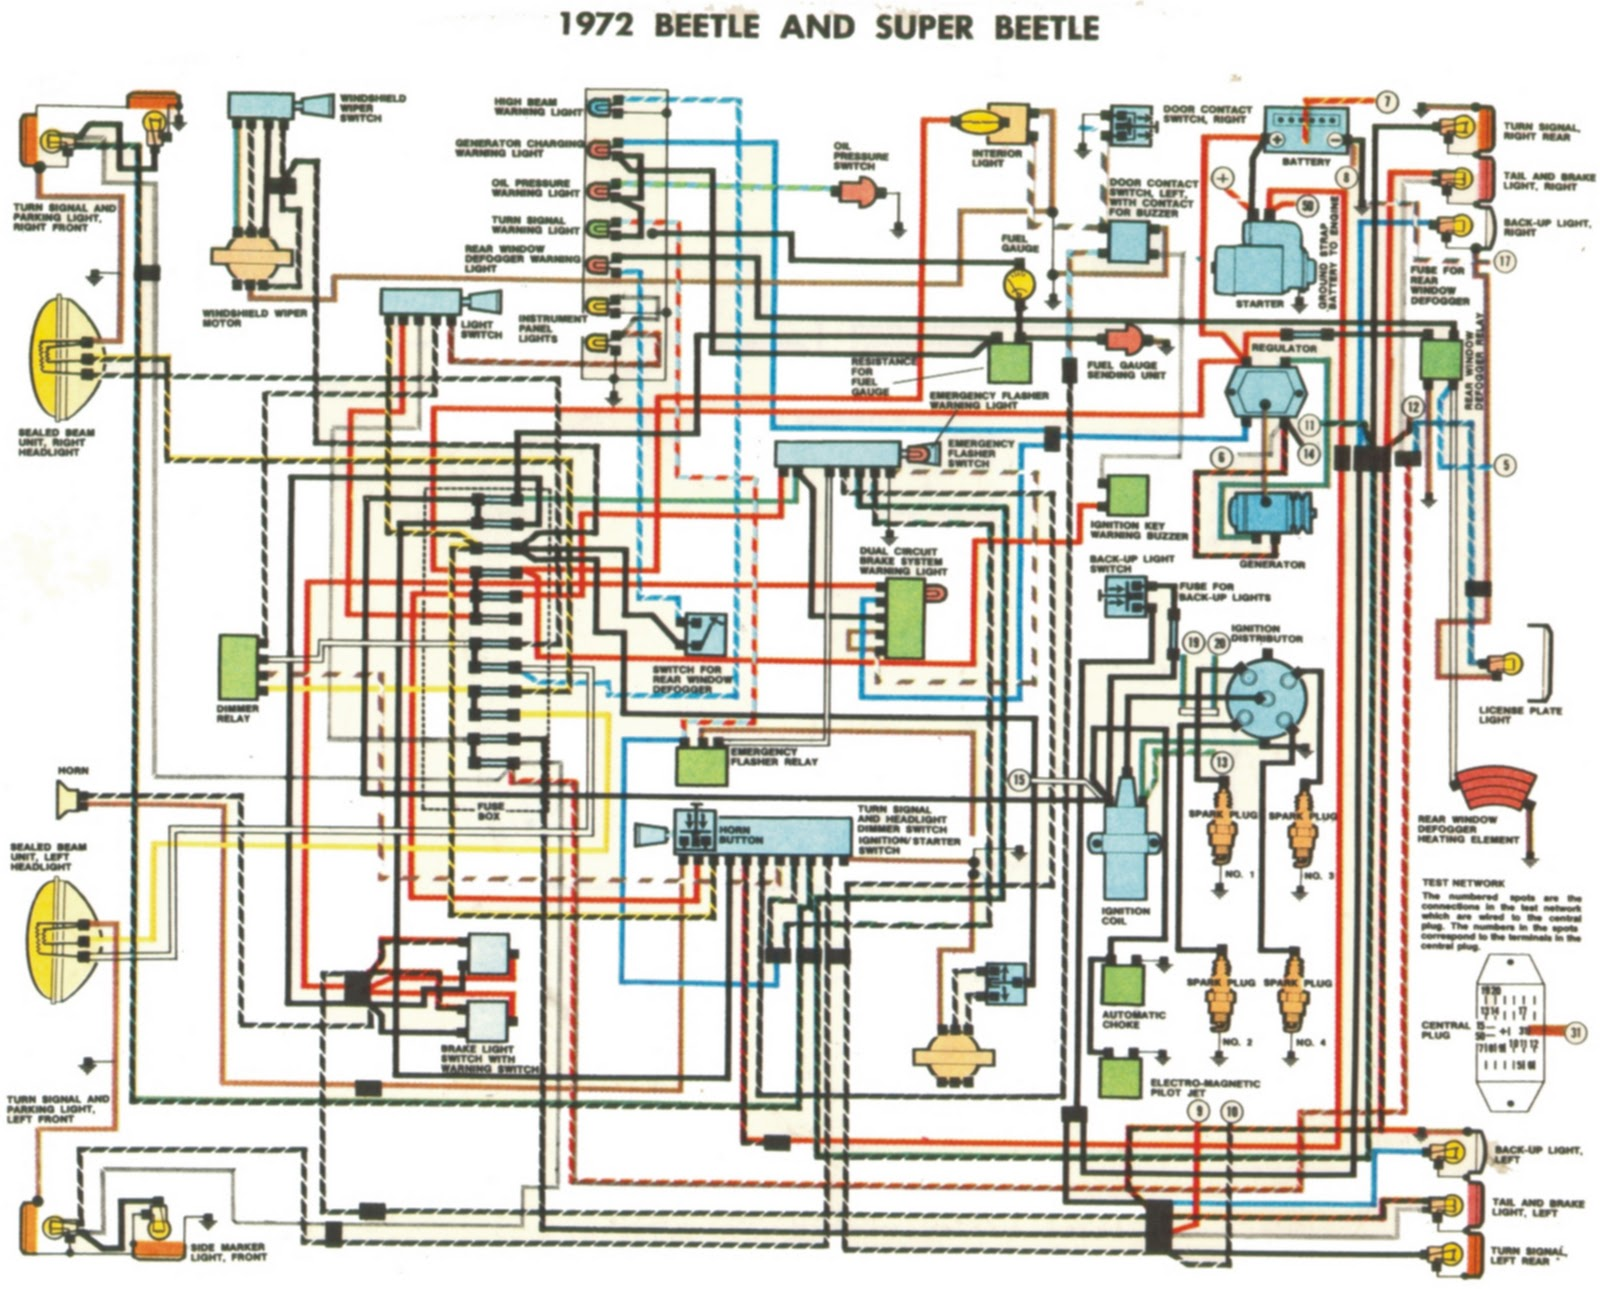 1972 beetle and super beetle wiring diagrams 72 vw beetle wiring diagram 2001 vw alternator wire diagram \u2022 free 1971 volkswagen super beetle wiring diagram at panicattacktreatment.co